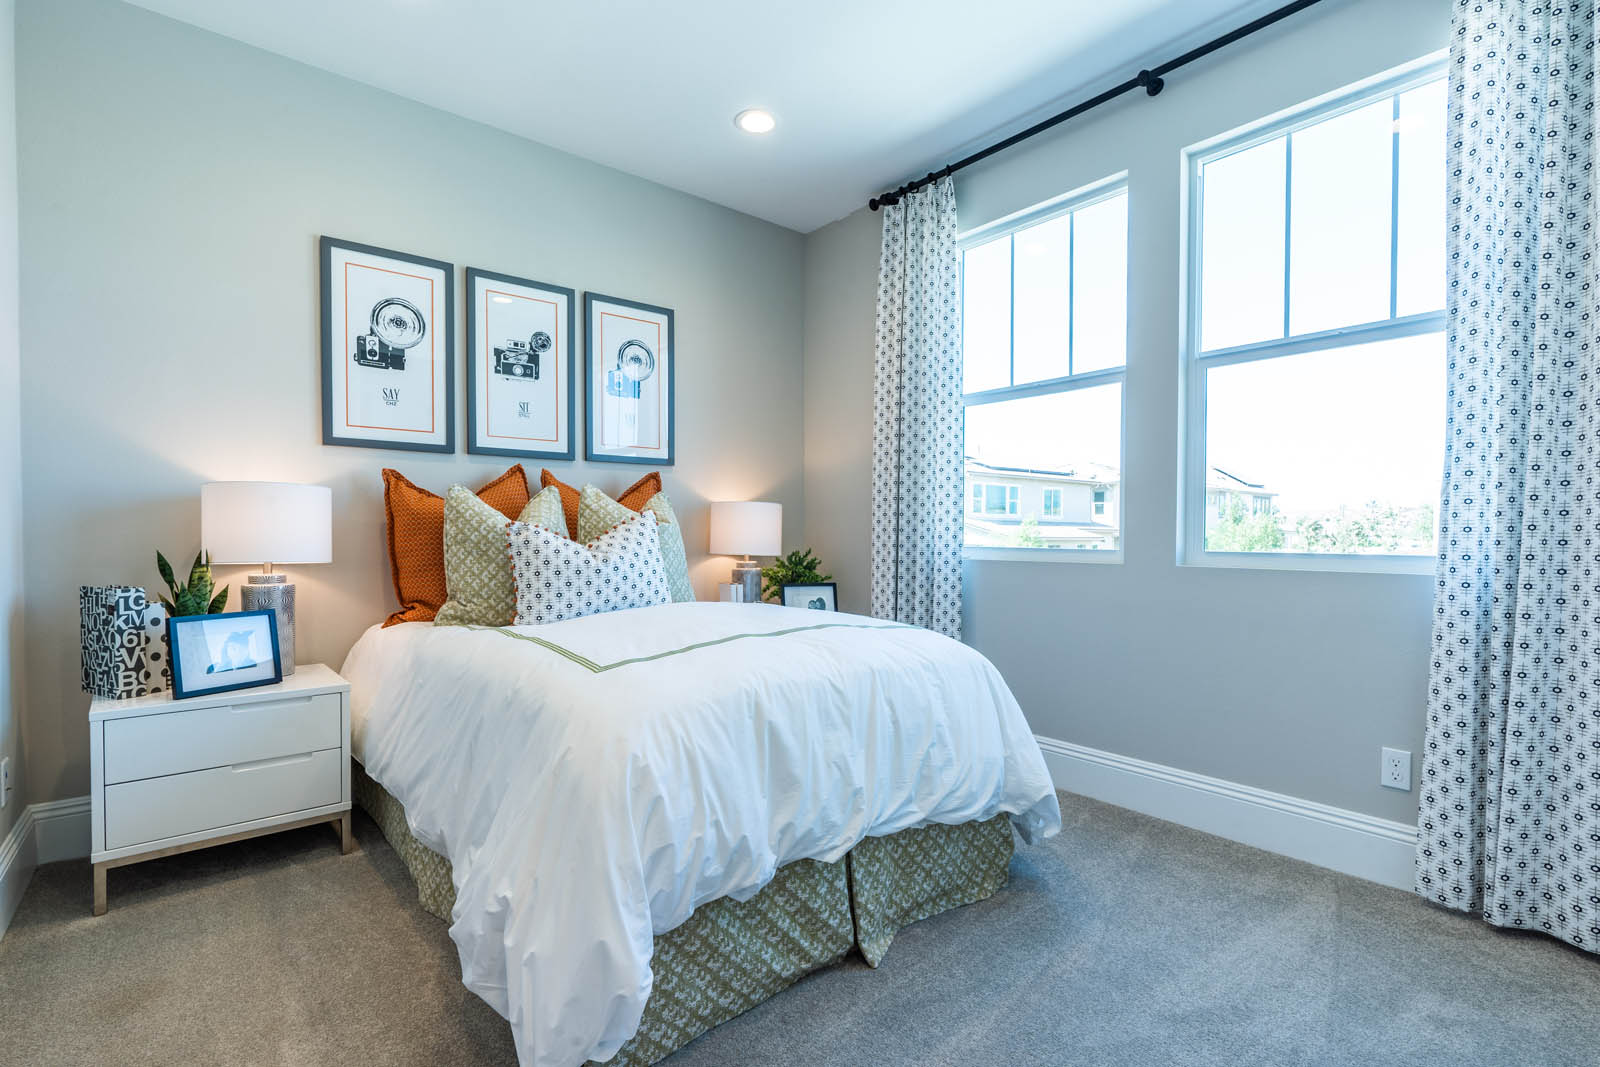 Bedroom 3 in Abbot at Arborly at Sommers Bend